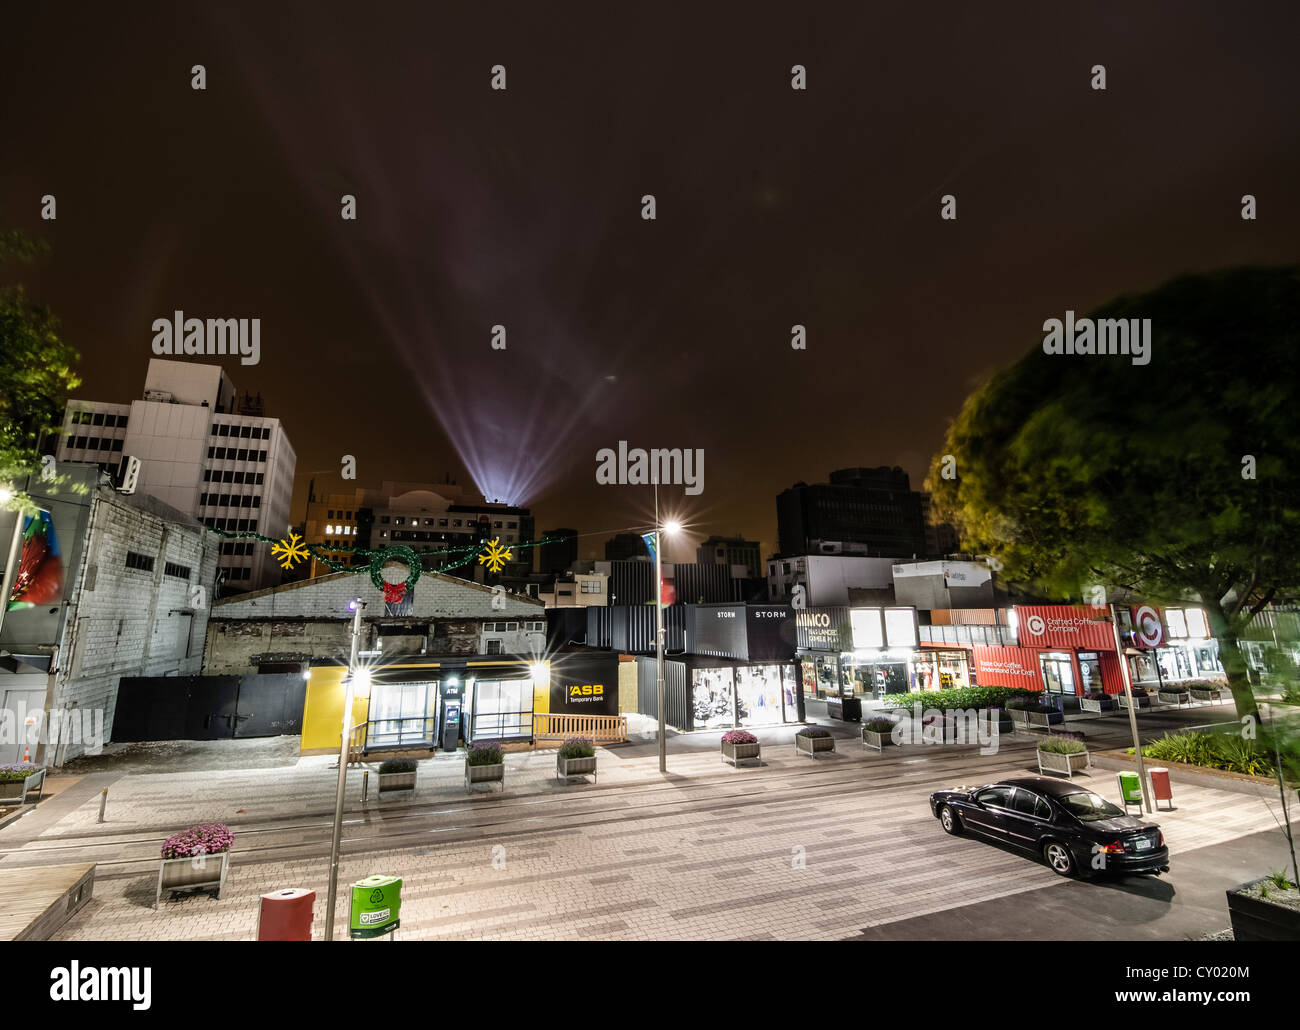 Shops in containers after the earthquakes, rays of light as a memorial for the earthquake victims over the city - Stock Image